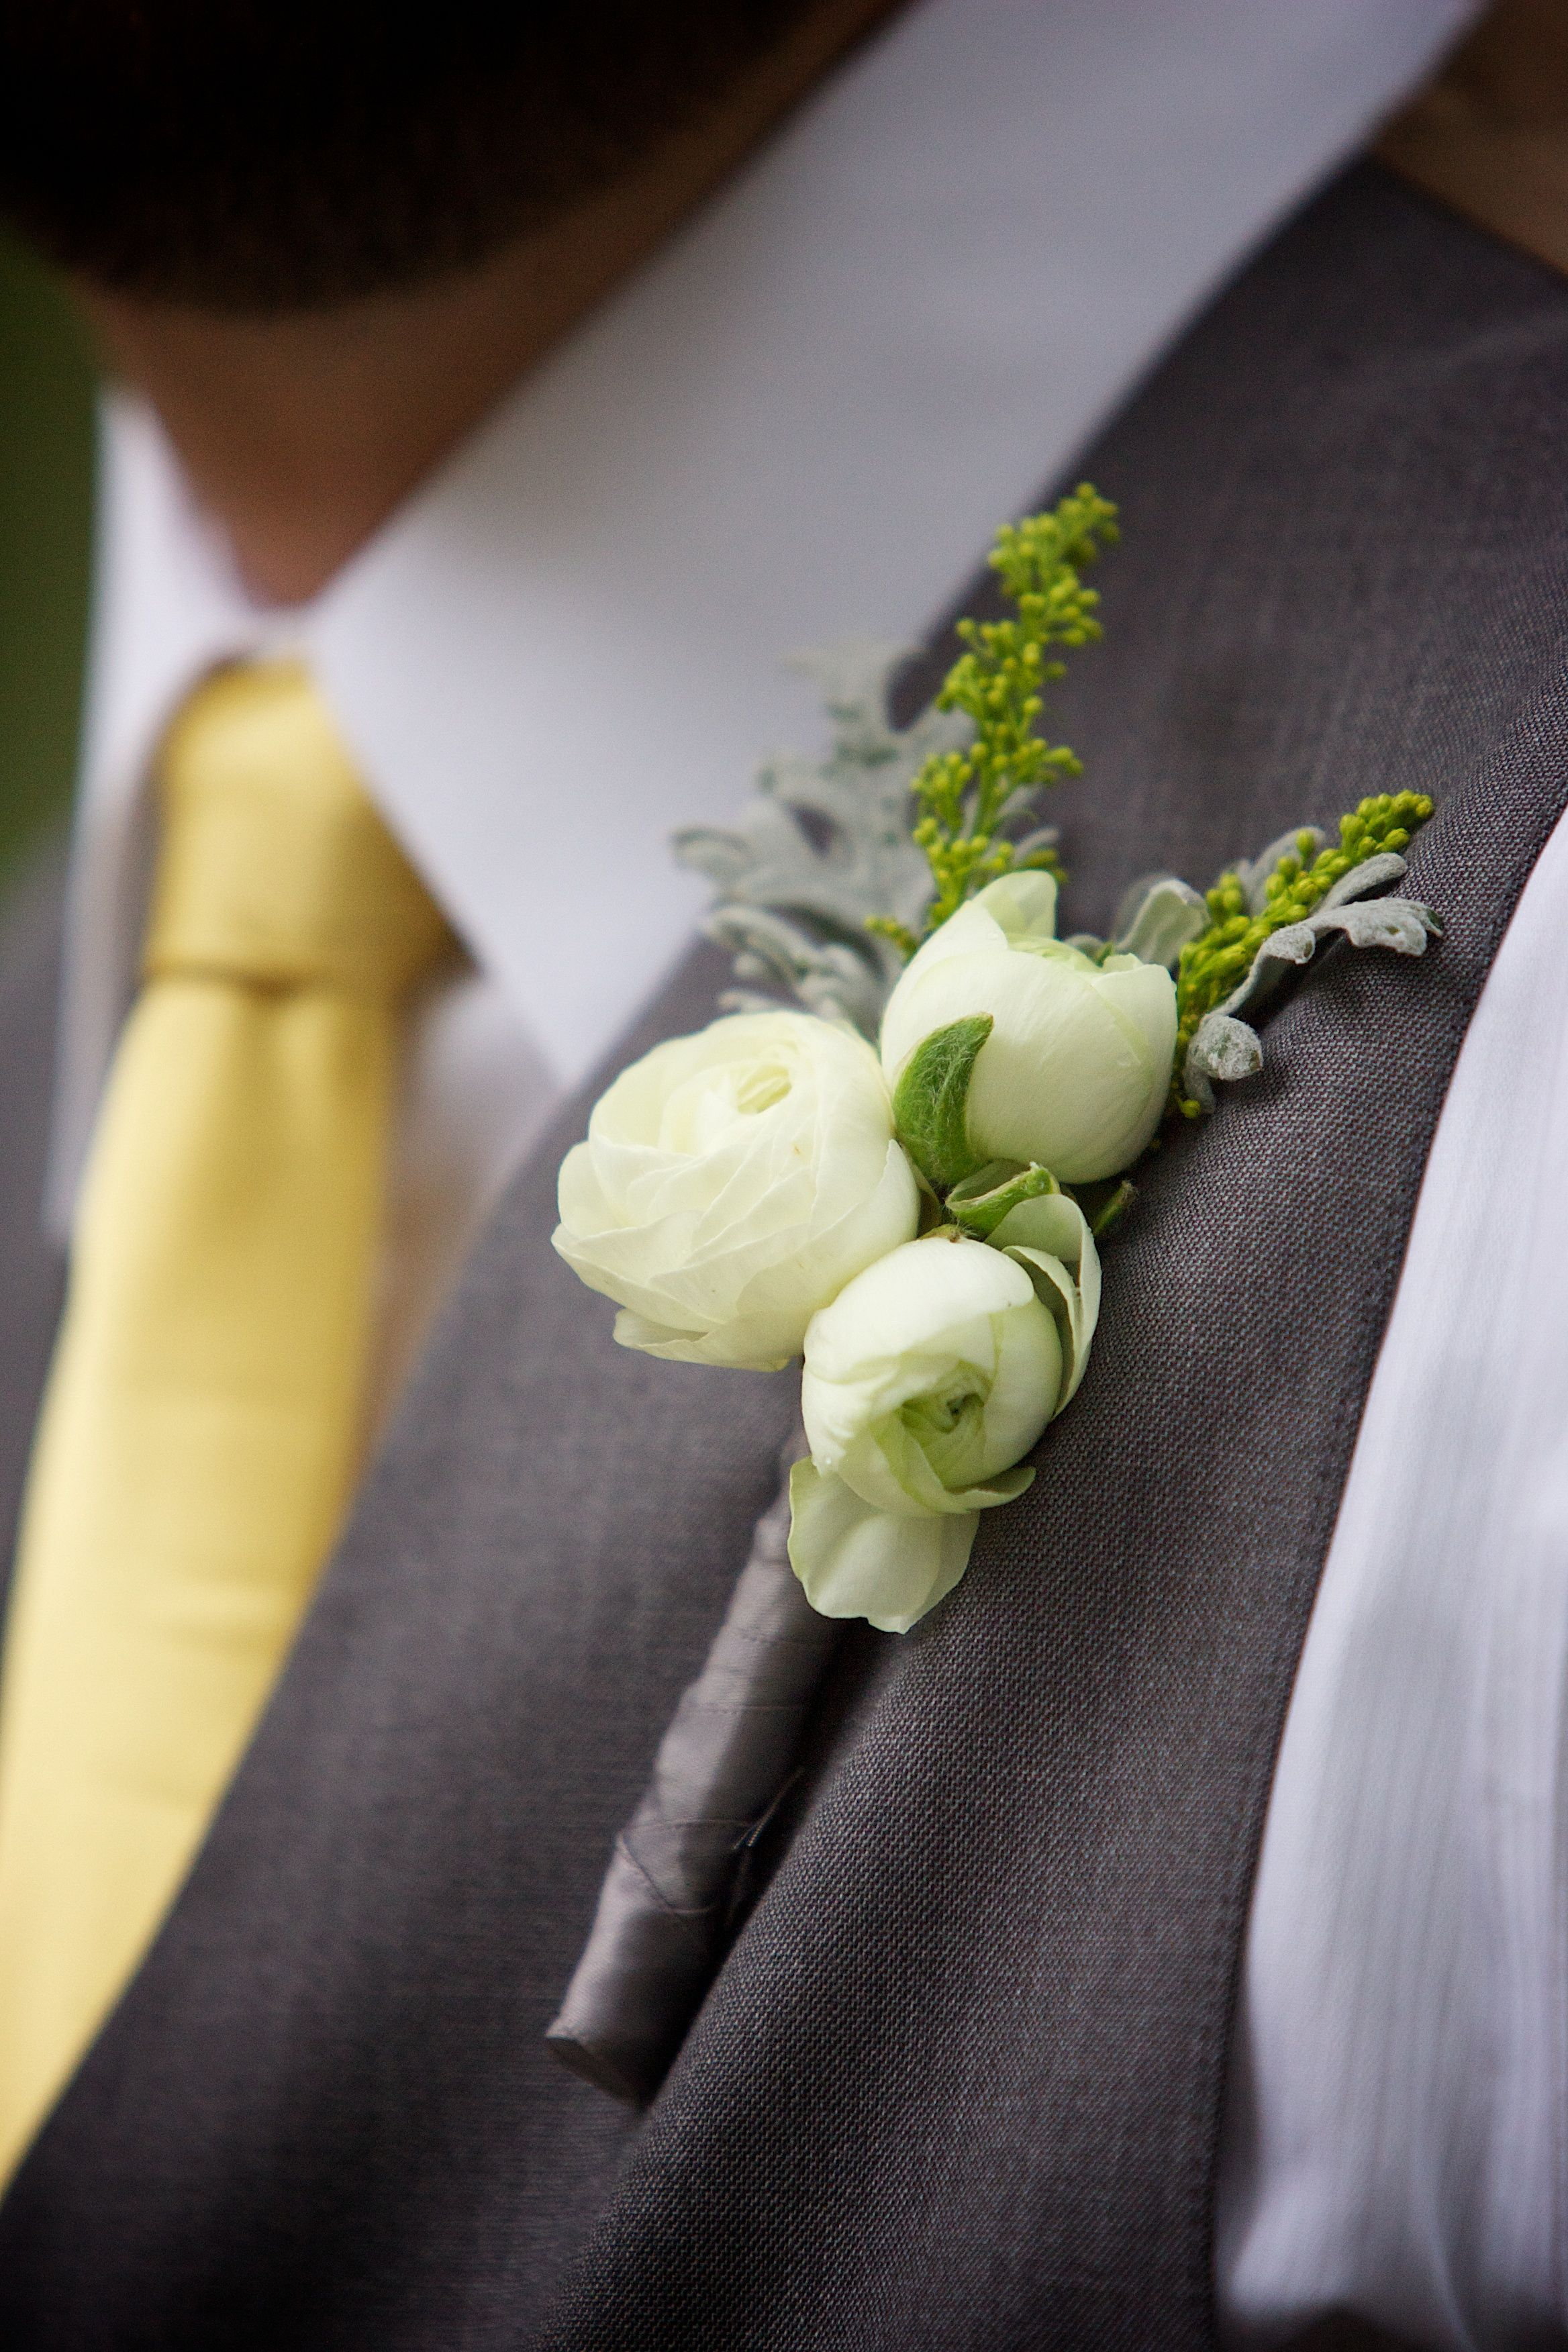 Jessica & Mike Wedding @GardensAtWestGreen #real #wedding #spring #green #yellow #gray #garden #boutonniere  Photography by Winfield Little